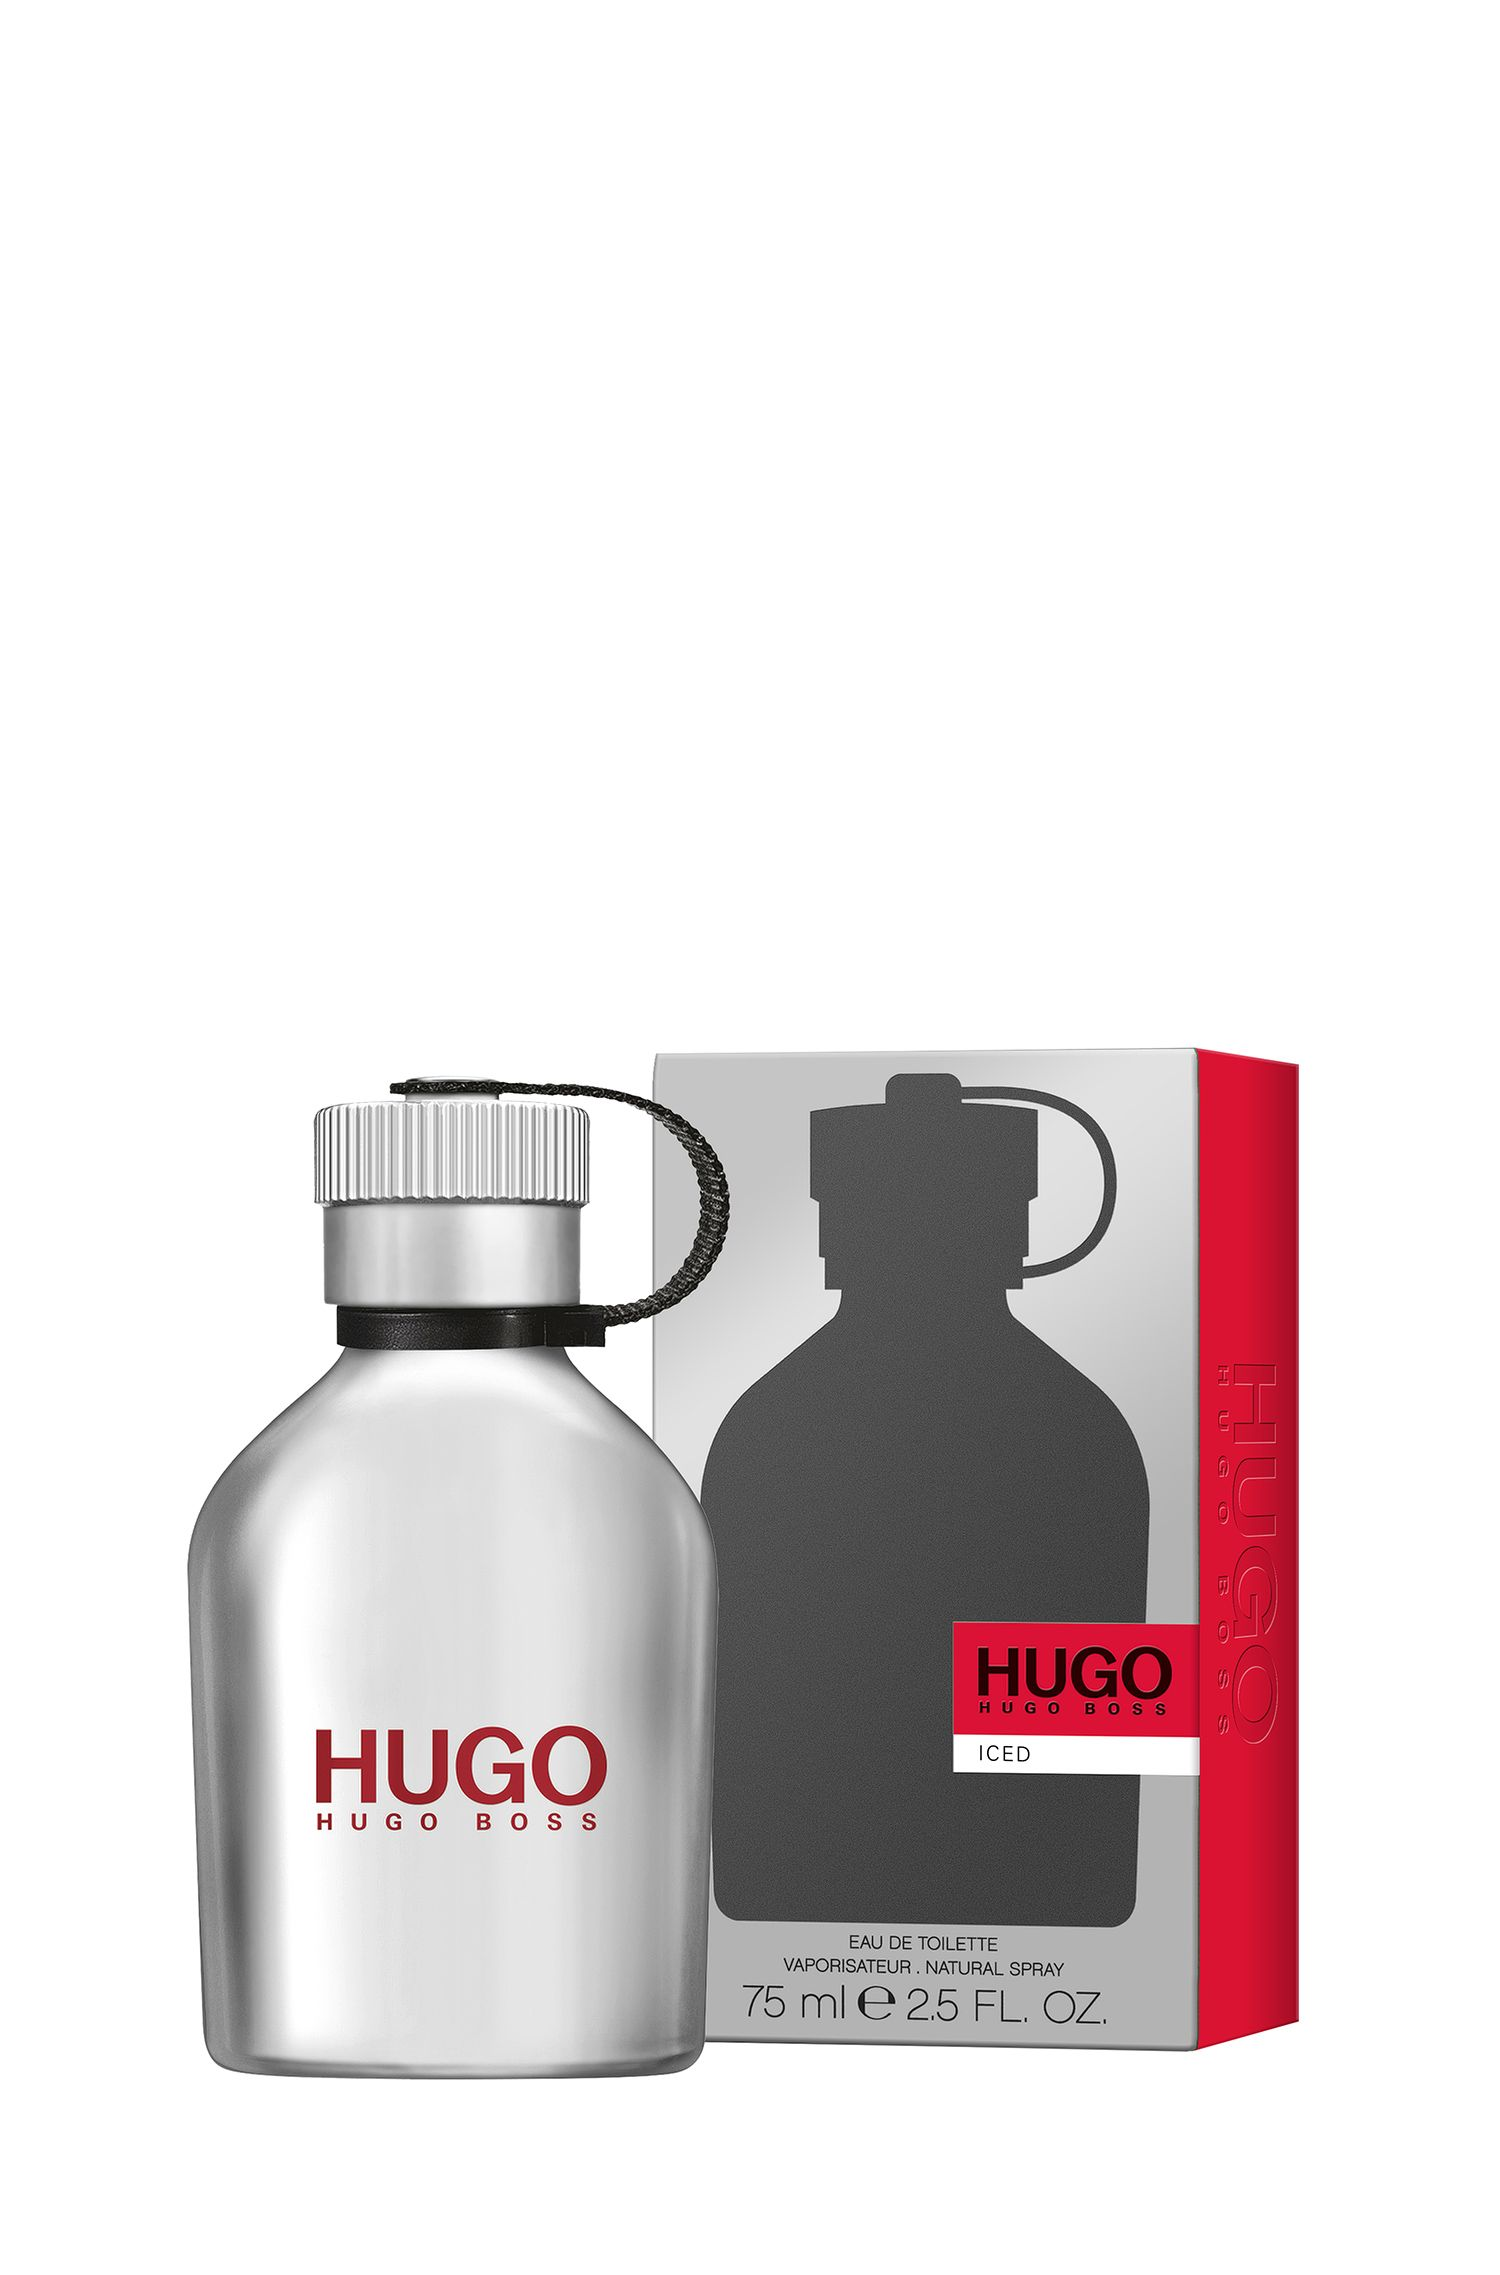 Eau de Toilette « HUGO Iced » 75 ml